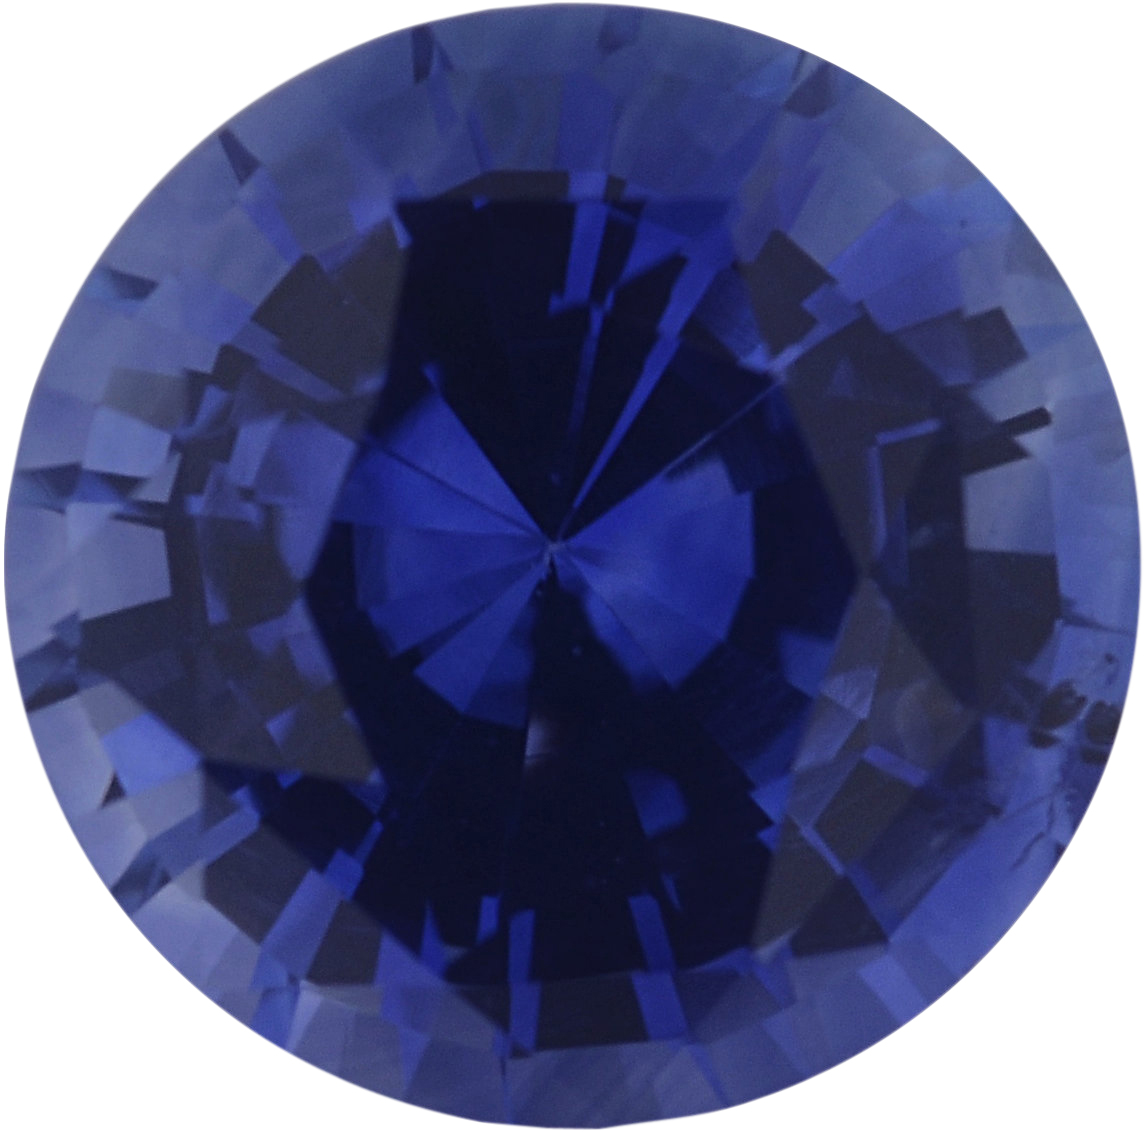 1.39 carats Blue Loose Sapphire Gemstone in Round Cut, 6.7 mm